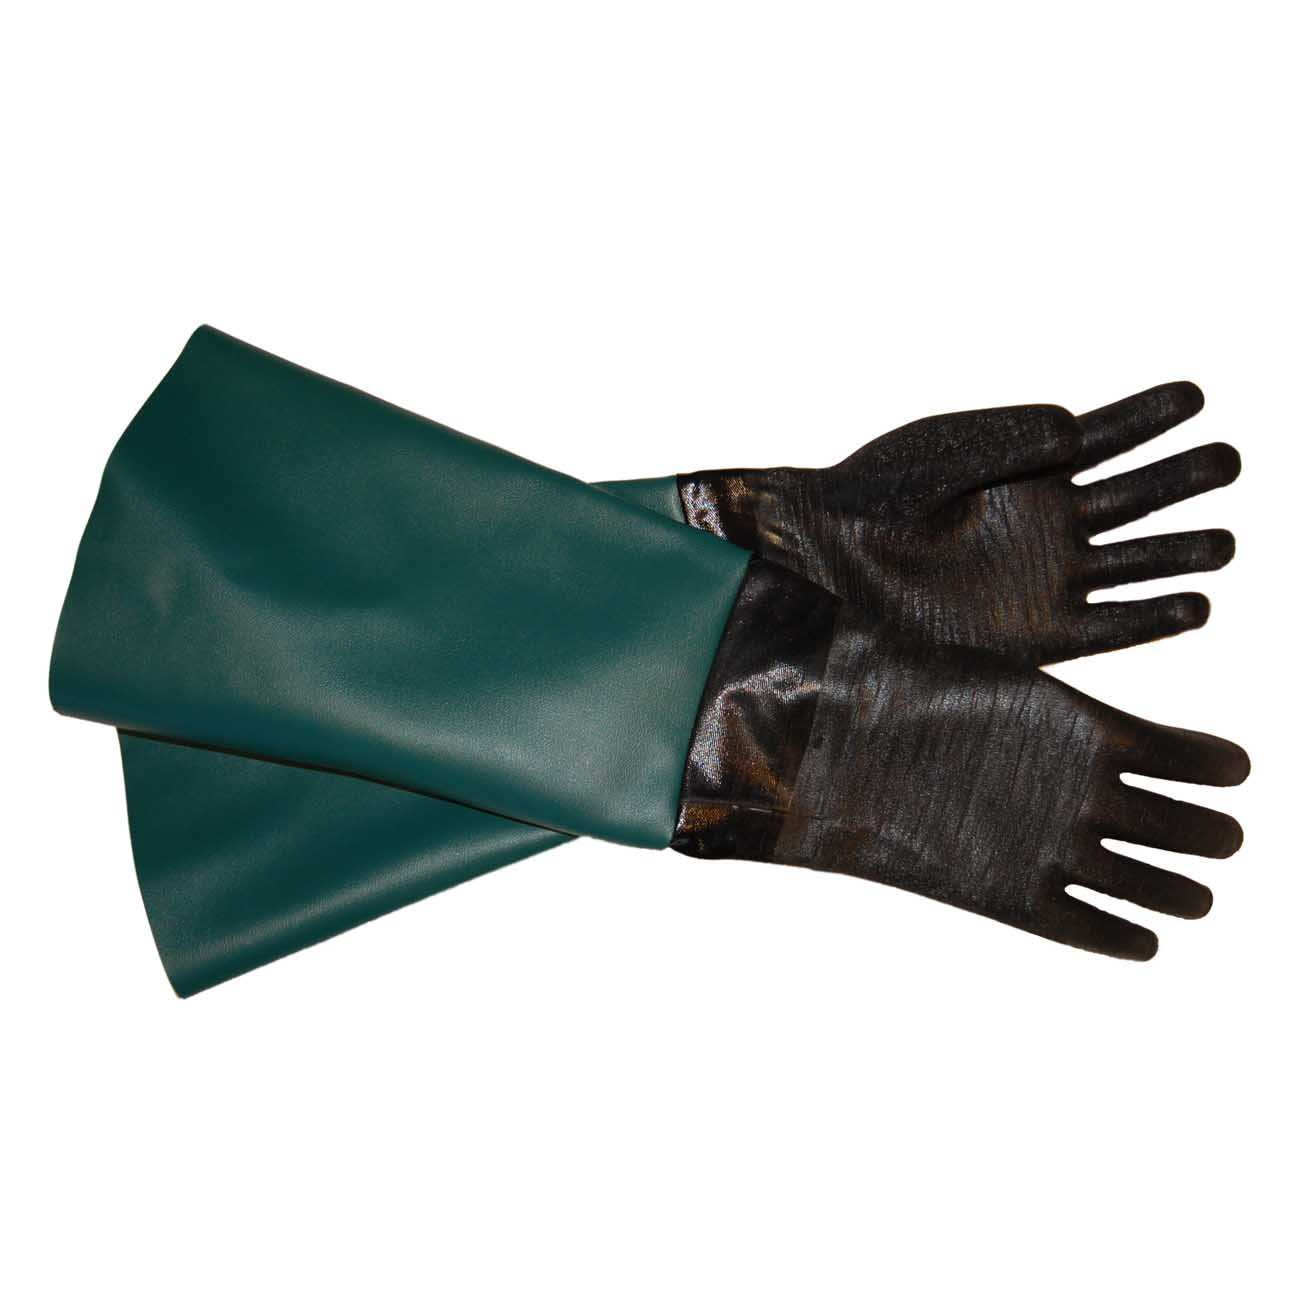 TUFF-Blast Gloves for Sandblasting Sandblaster Sand Blast Cabinet - 5.5'' x 24'' Made in USA